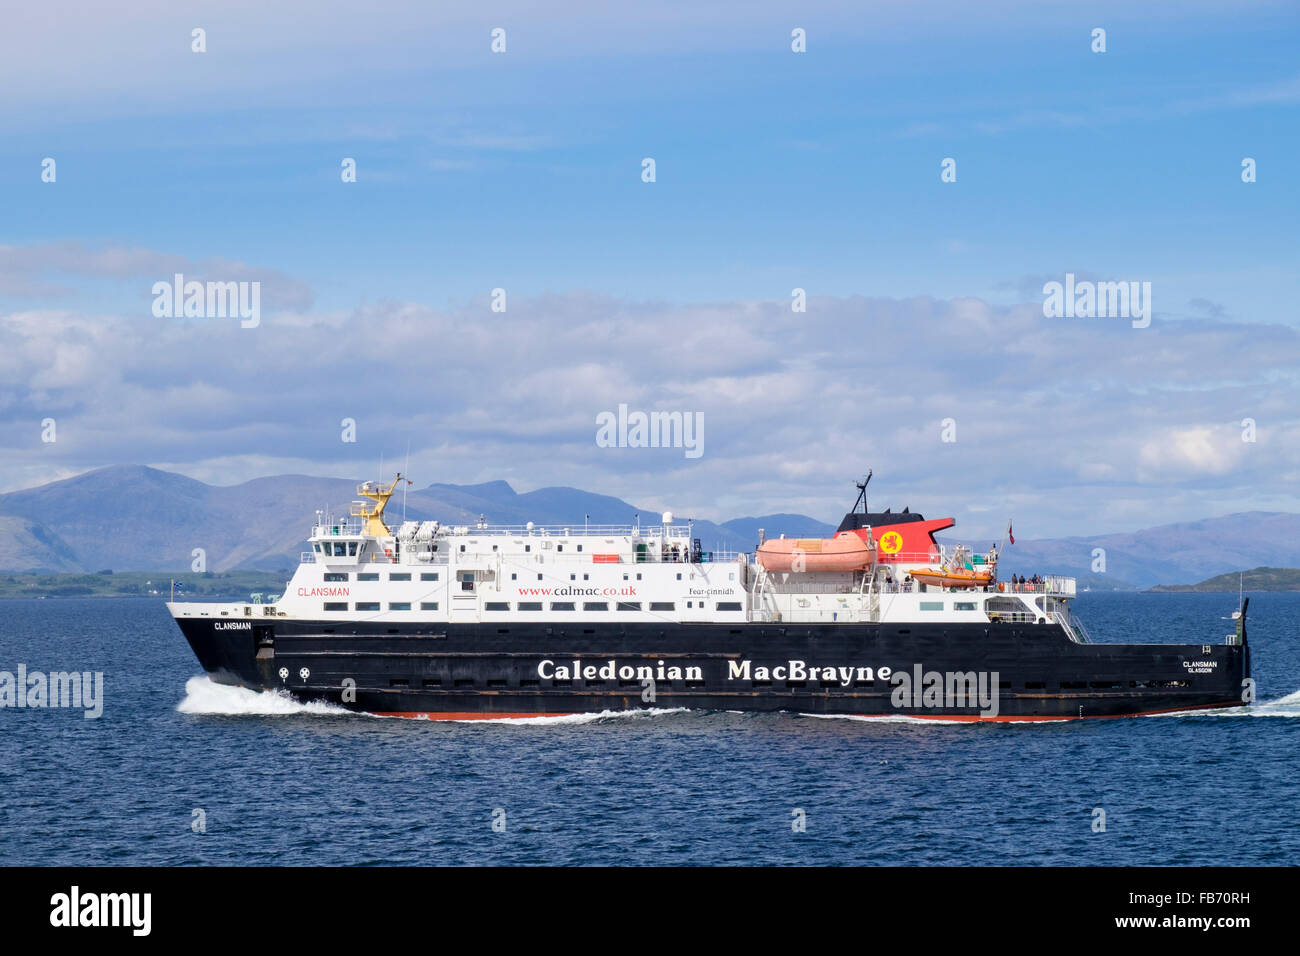 Caledonian MacBrayne ferry sailing out of Oban, Argyll and Bute, Inner Hebrides, Western Isles, Scotland, UK, Britain - Stock Image